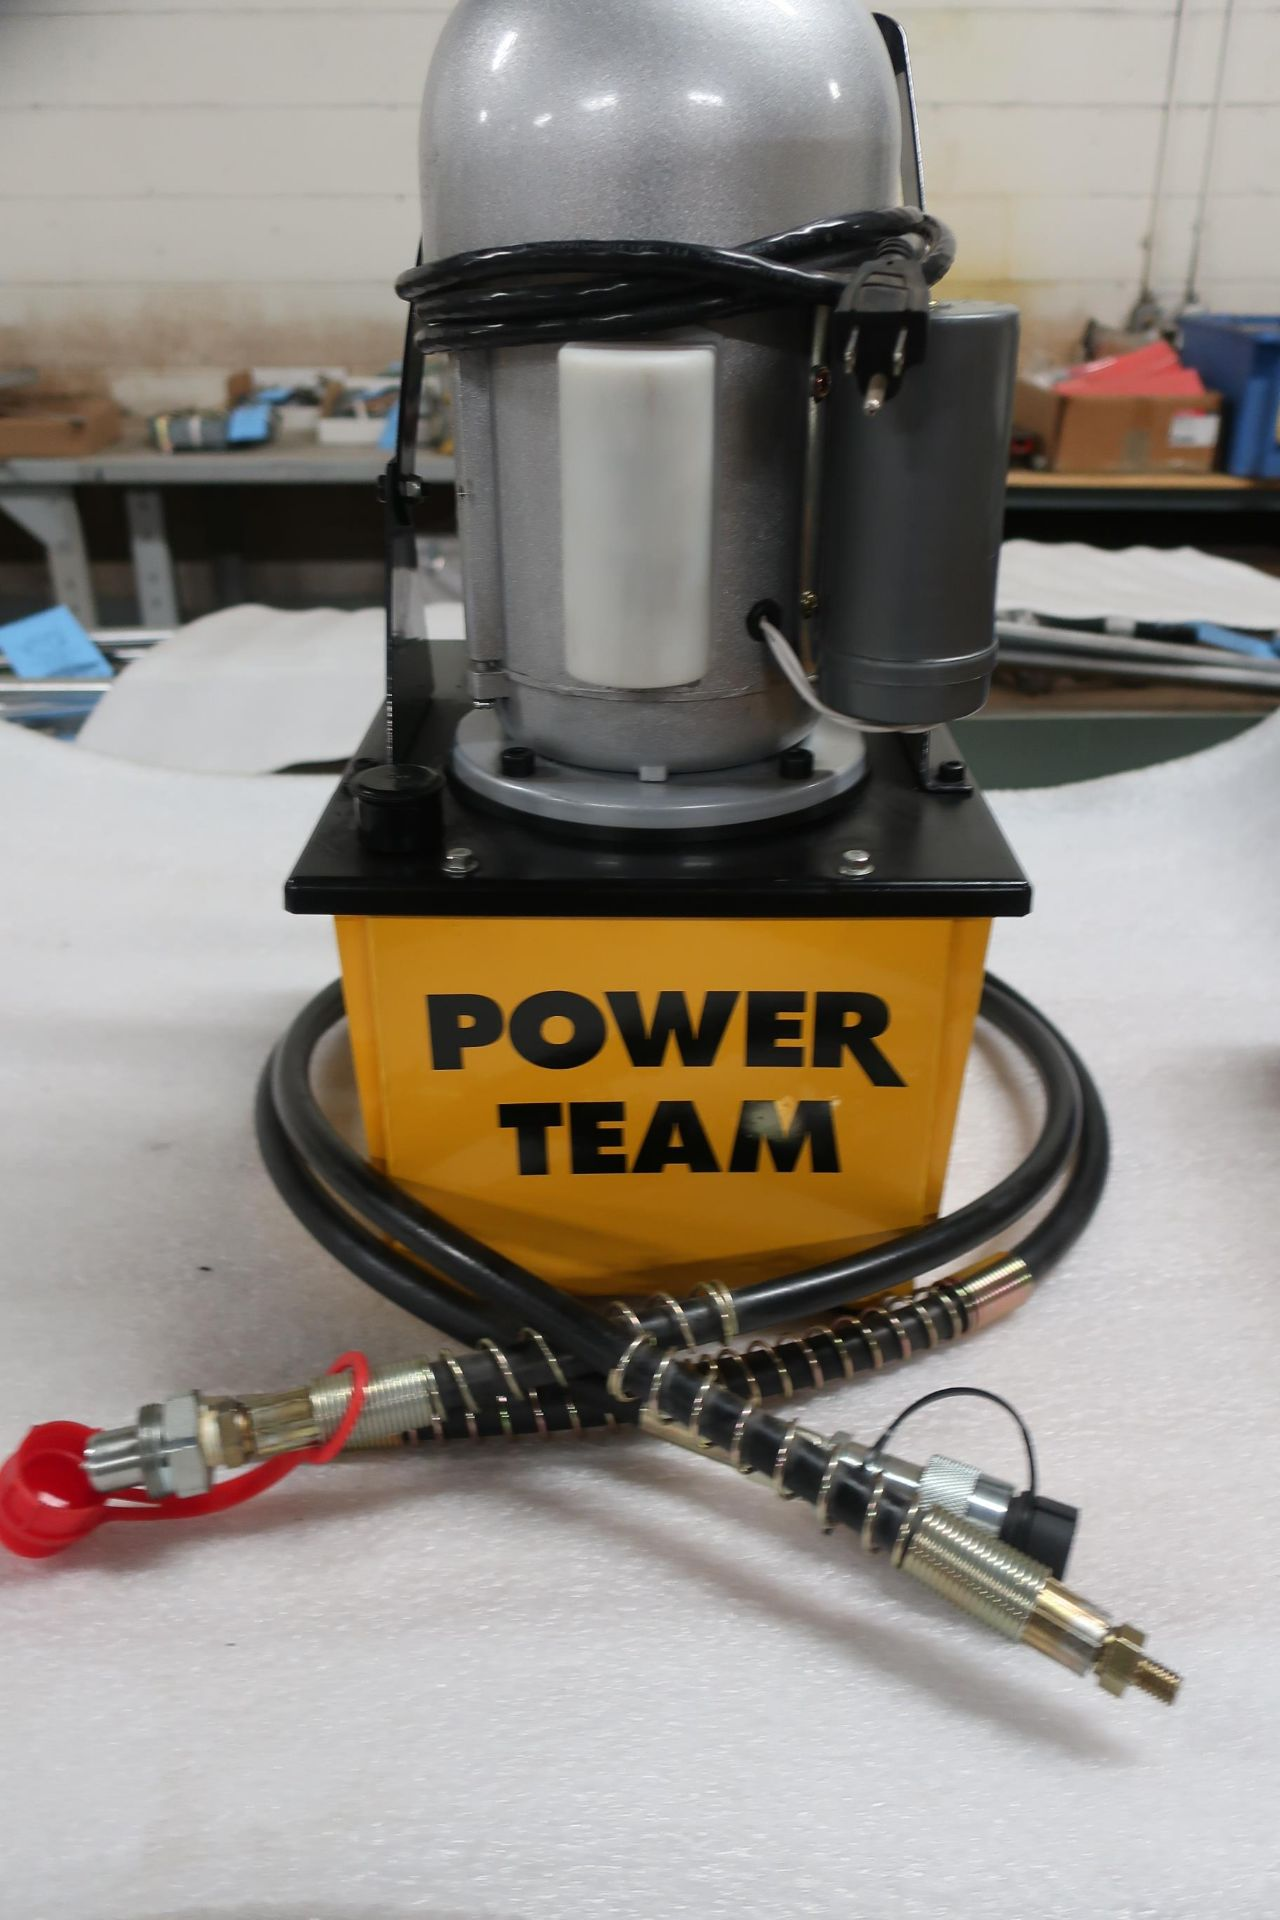 Power Team Hydraulics Electric Powerpack type - 120V single phase hydraulic pump - UNUSED & MINT - Image 2 of 2